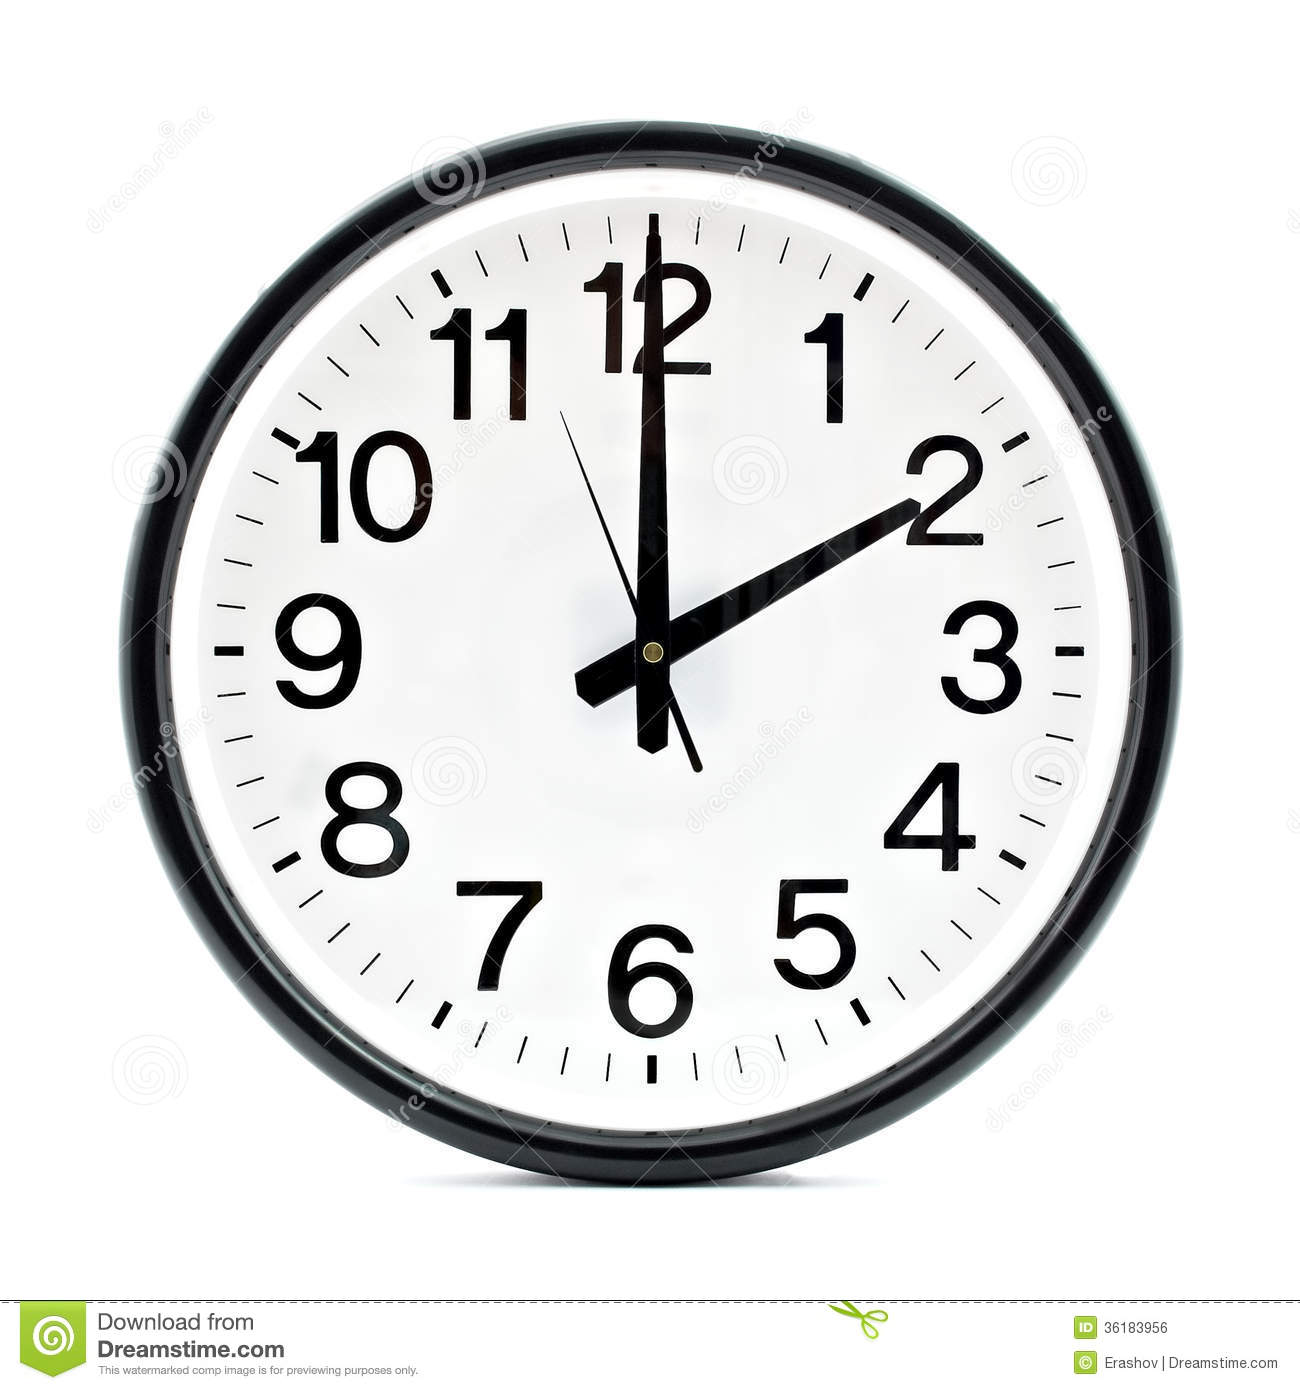 Wall Clock Clipart Black And White.